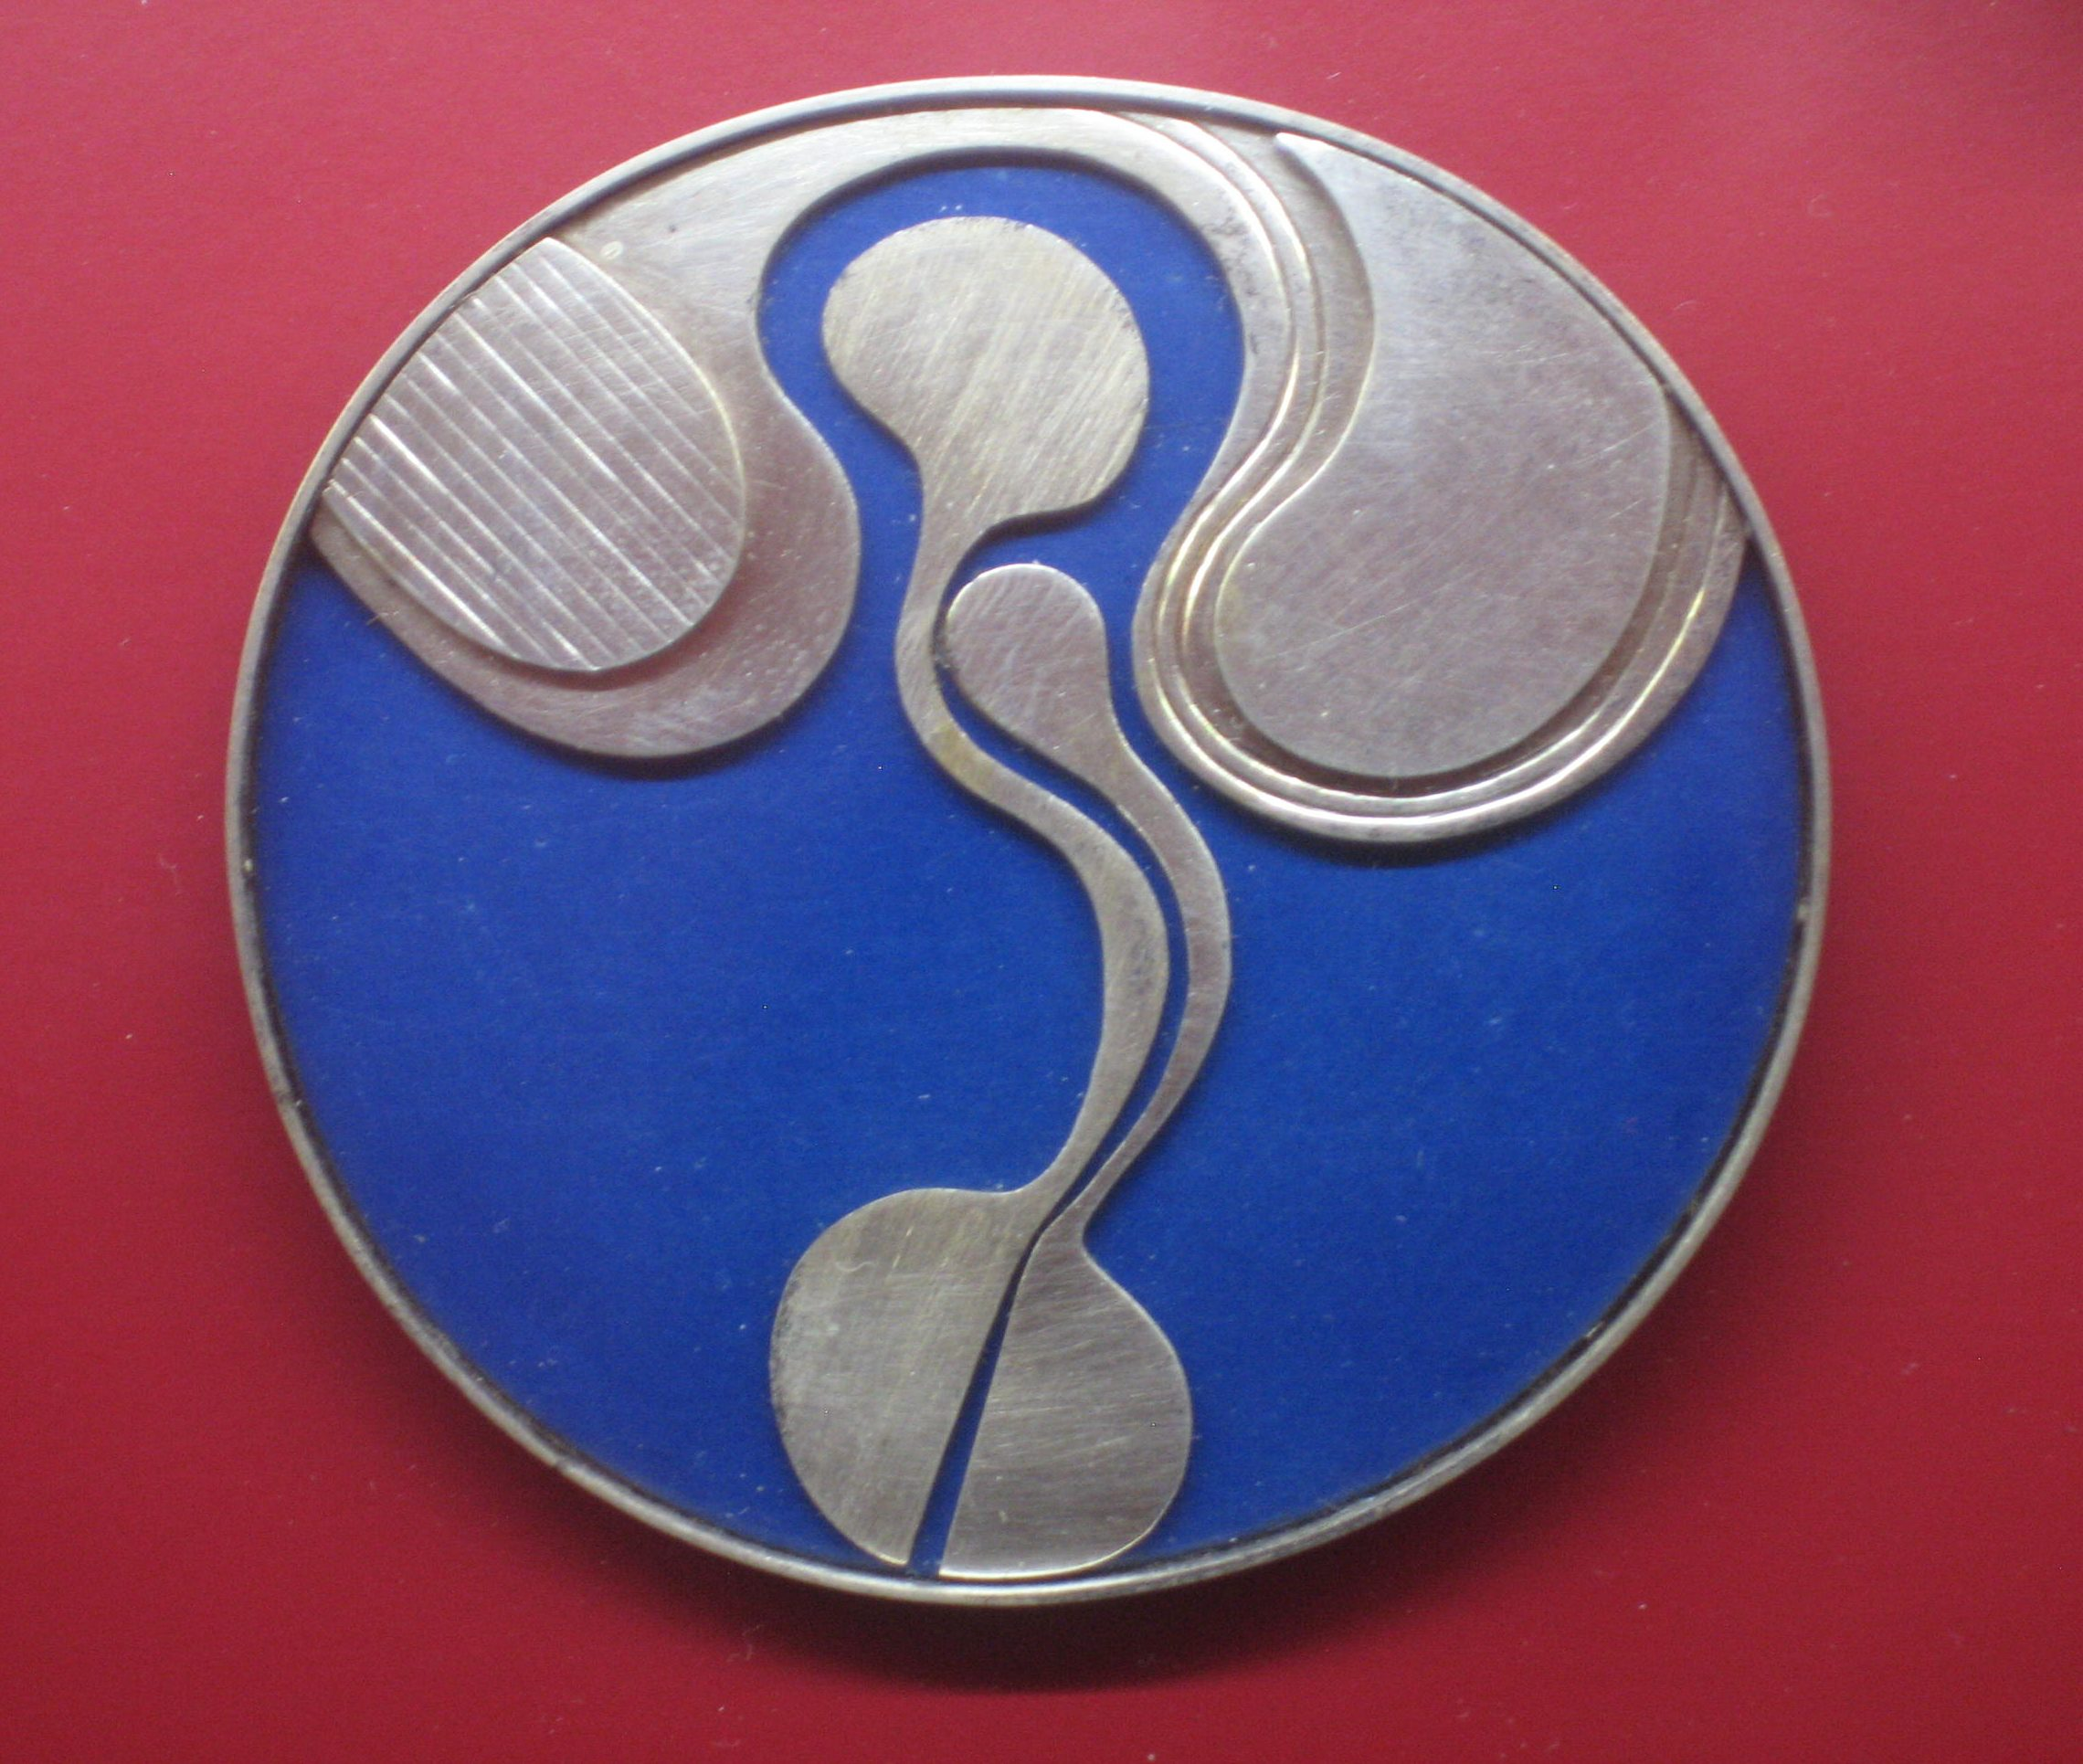 Uta Feiler, broche, 1977. Collectie Angermuseum, VIII 723 (S 22-90). Foto Esther Doornbusch, CC BY 4.0